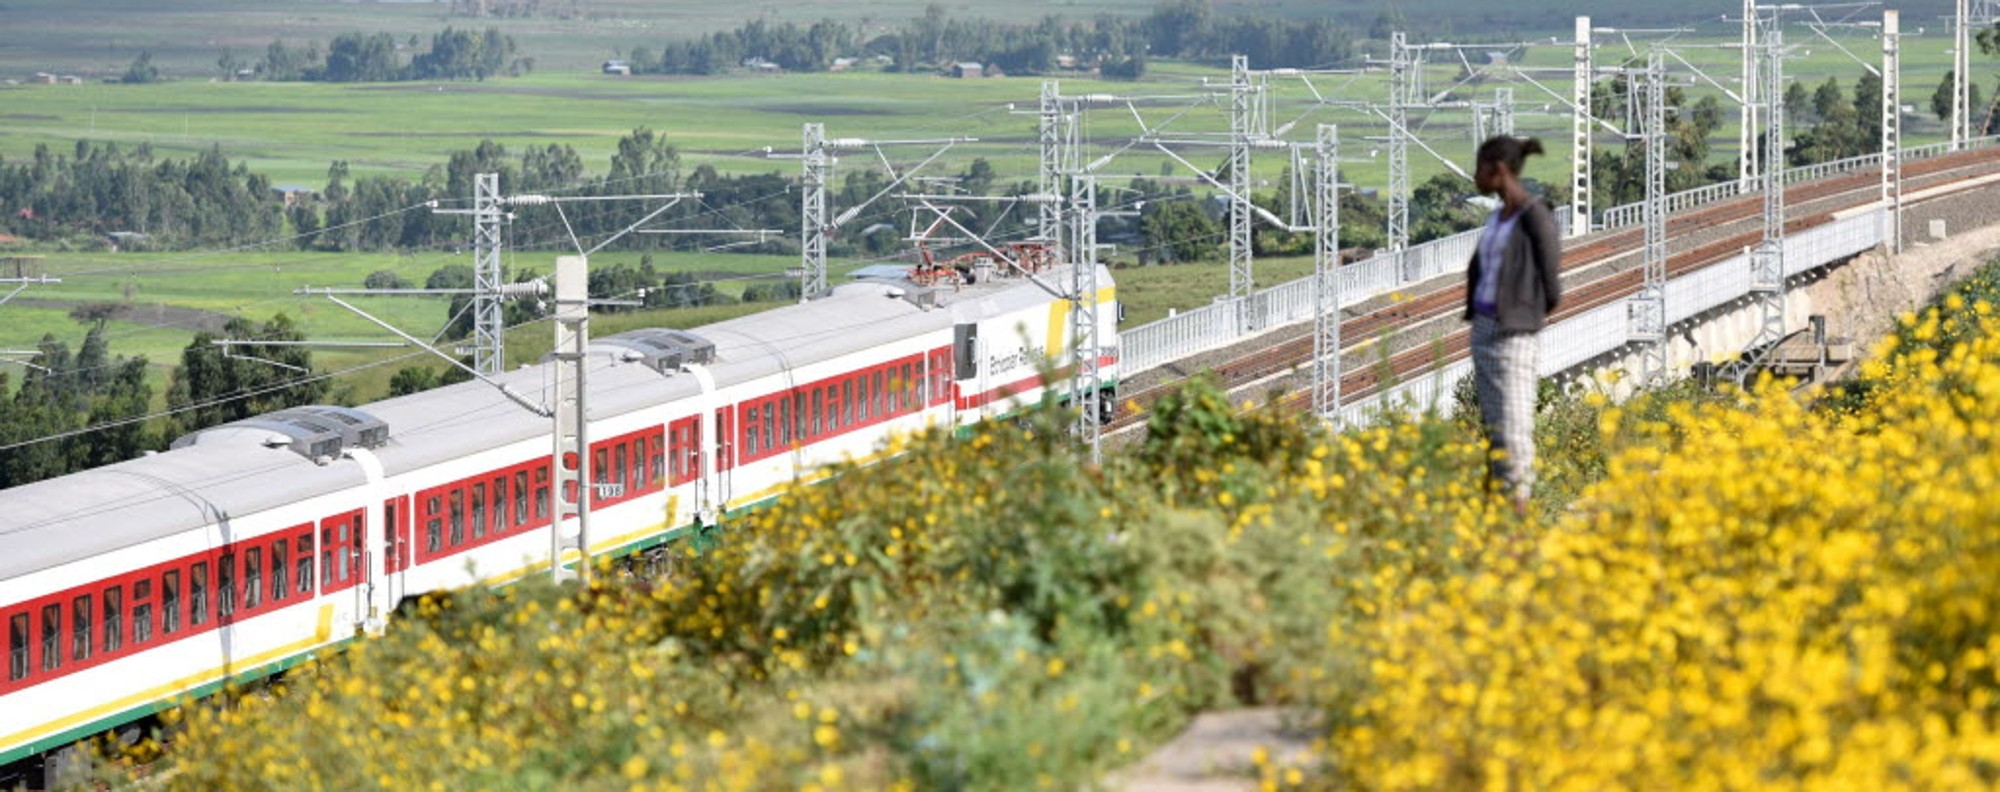 A train on the Addis Ababa to Djibouti railway line. Picture: Xinhua